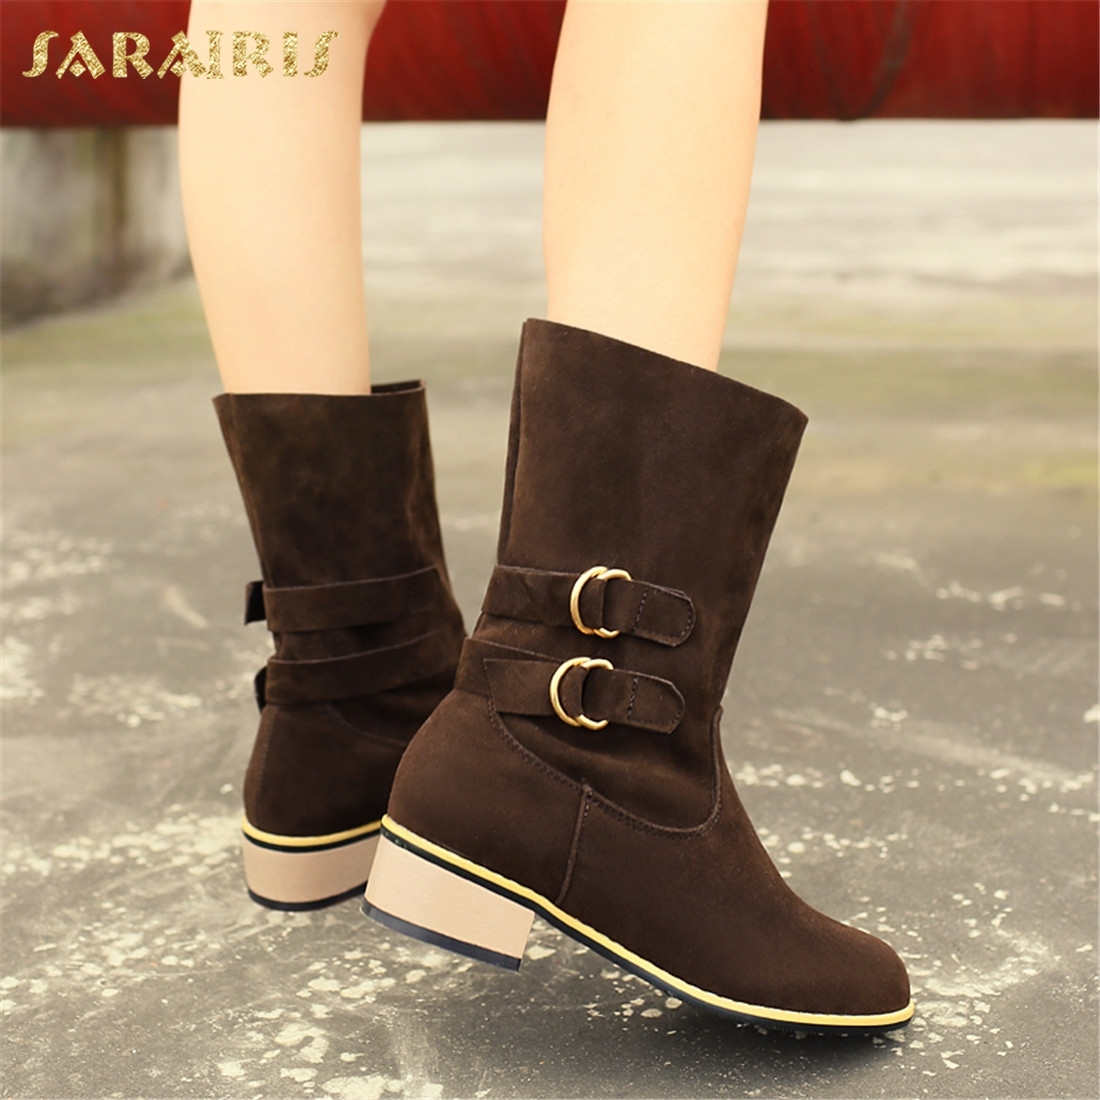 SARAIRIS Plus Size 34-48 Add Fur Warm Winter Boots Woman Shoes Chunky Heels Hot Sale Mid Calf Boots Female Shoes Women sarairis new plus size 32 46 slip on add fur add fur winter boots woman shoes chunky heels mid calf boots shoes woman